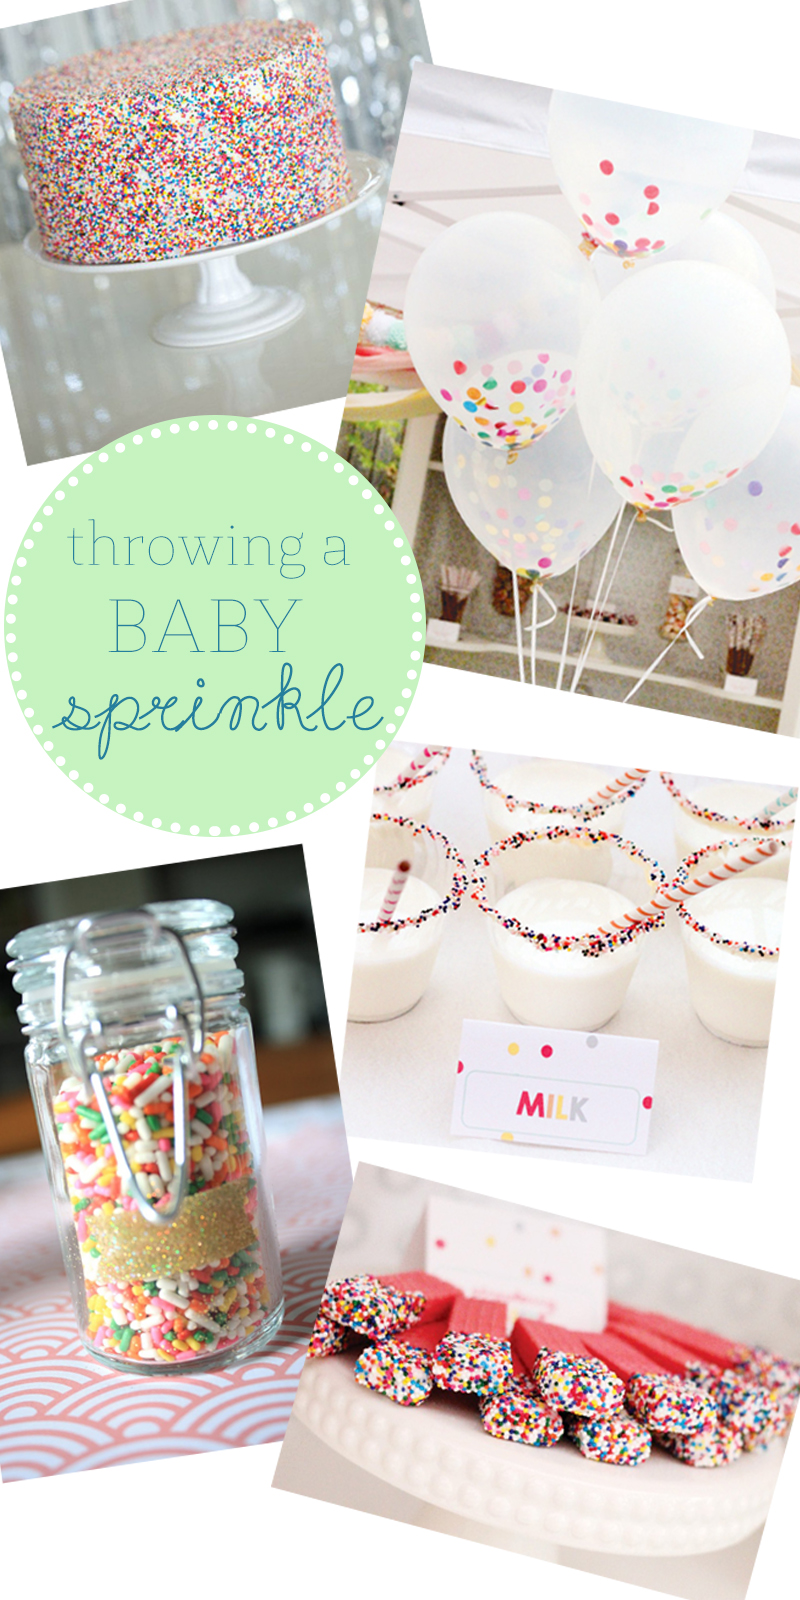 Beautiful Wondering How To Plan Your Baby Sprinkle? Here Are Several Ideas That  Celebrate The Baby ...